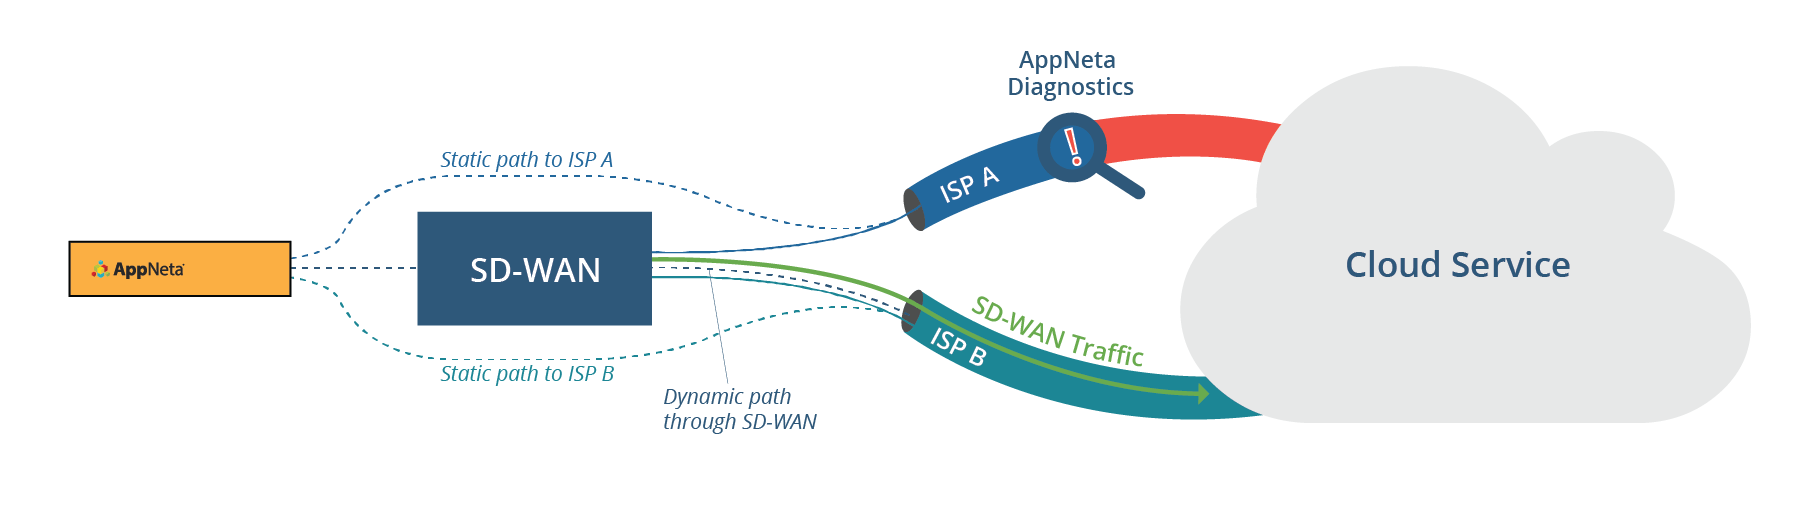 What You Need to Know About SD-WAN Technology